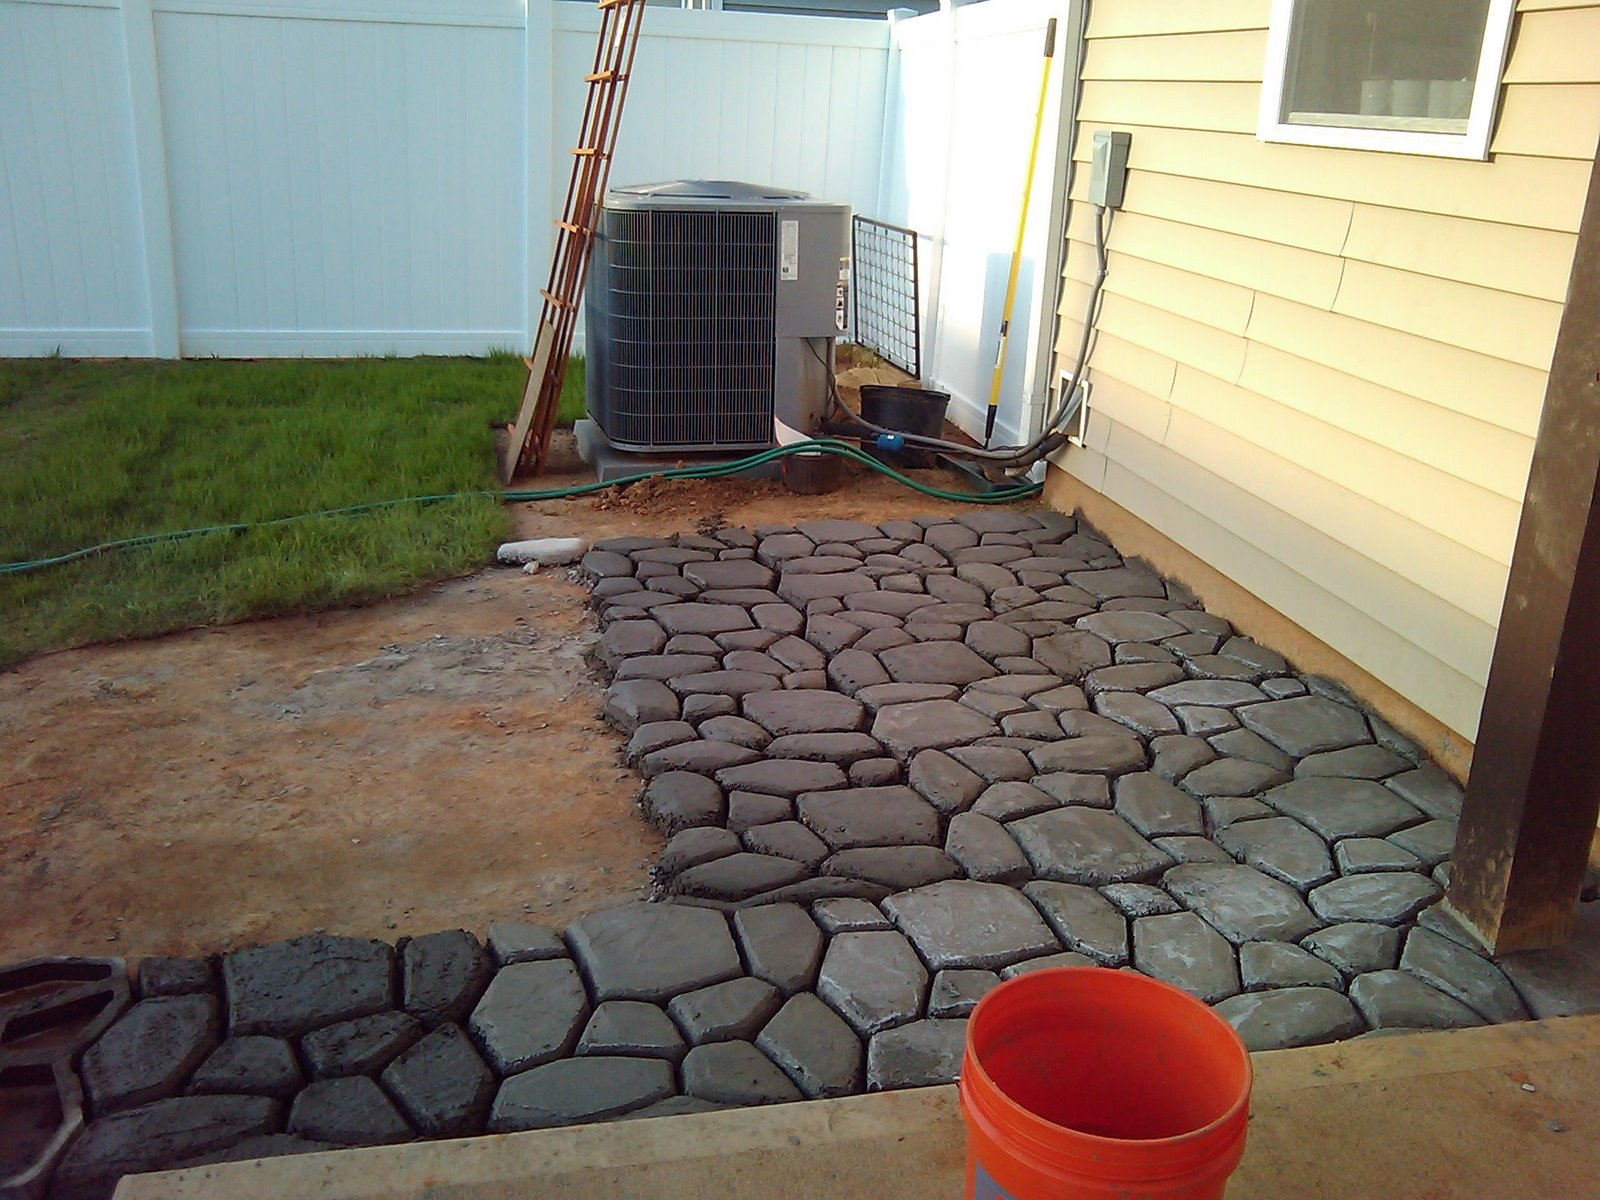 Build A Concrete Patio Tips On How To Make A Concrete Patio How To Build A Pergola On A